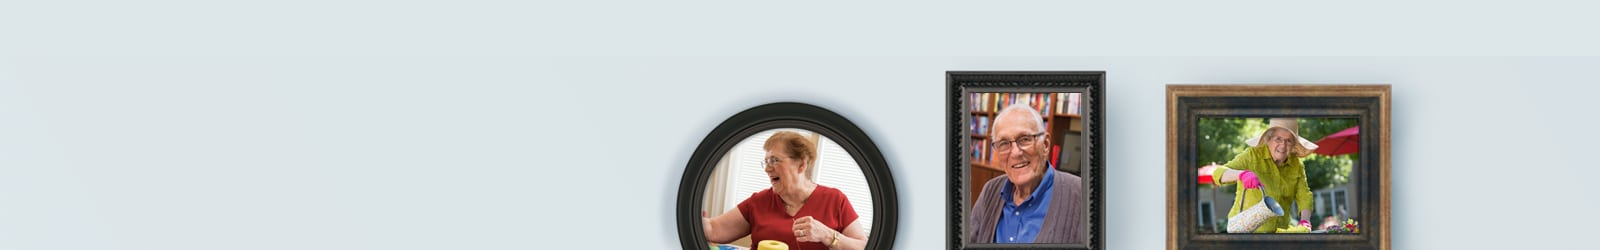 Home health at Omaha Communities in Omaha, Nebraska